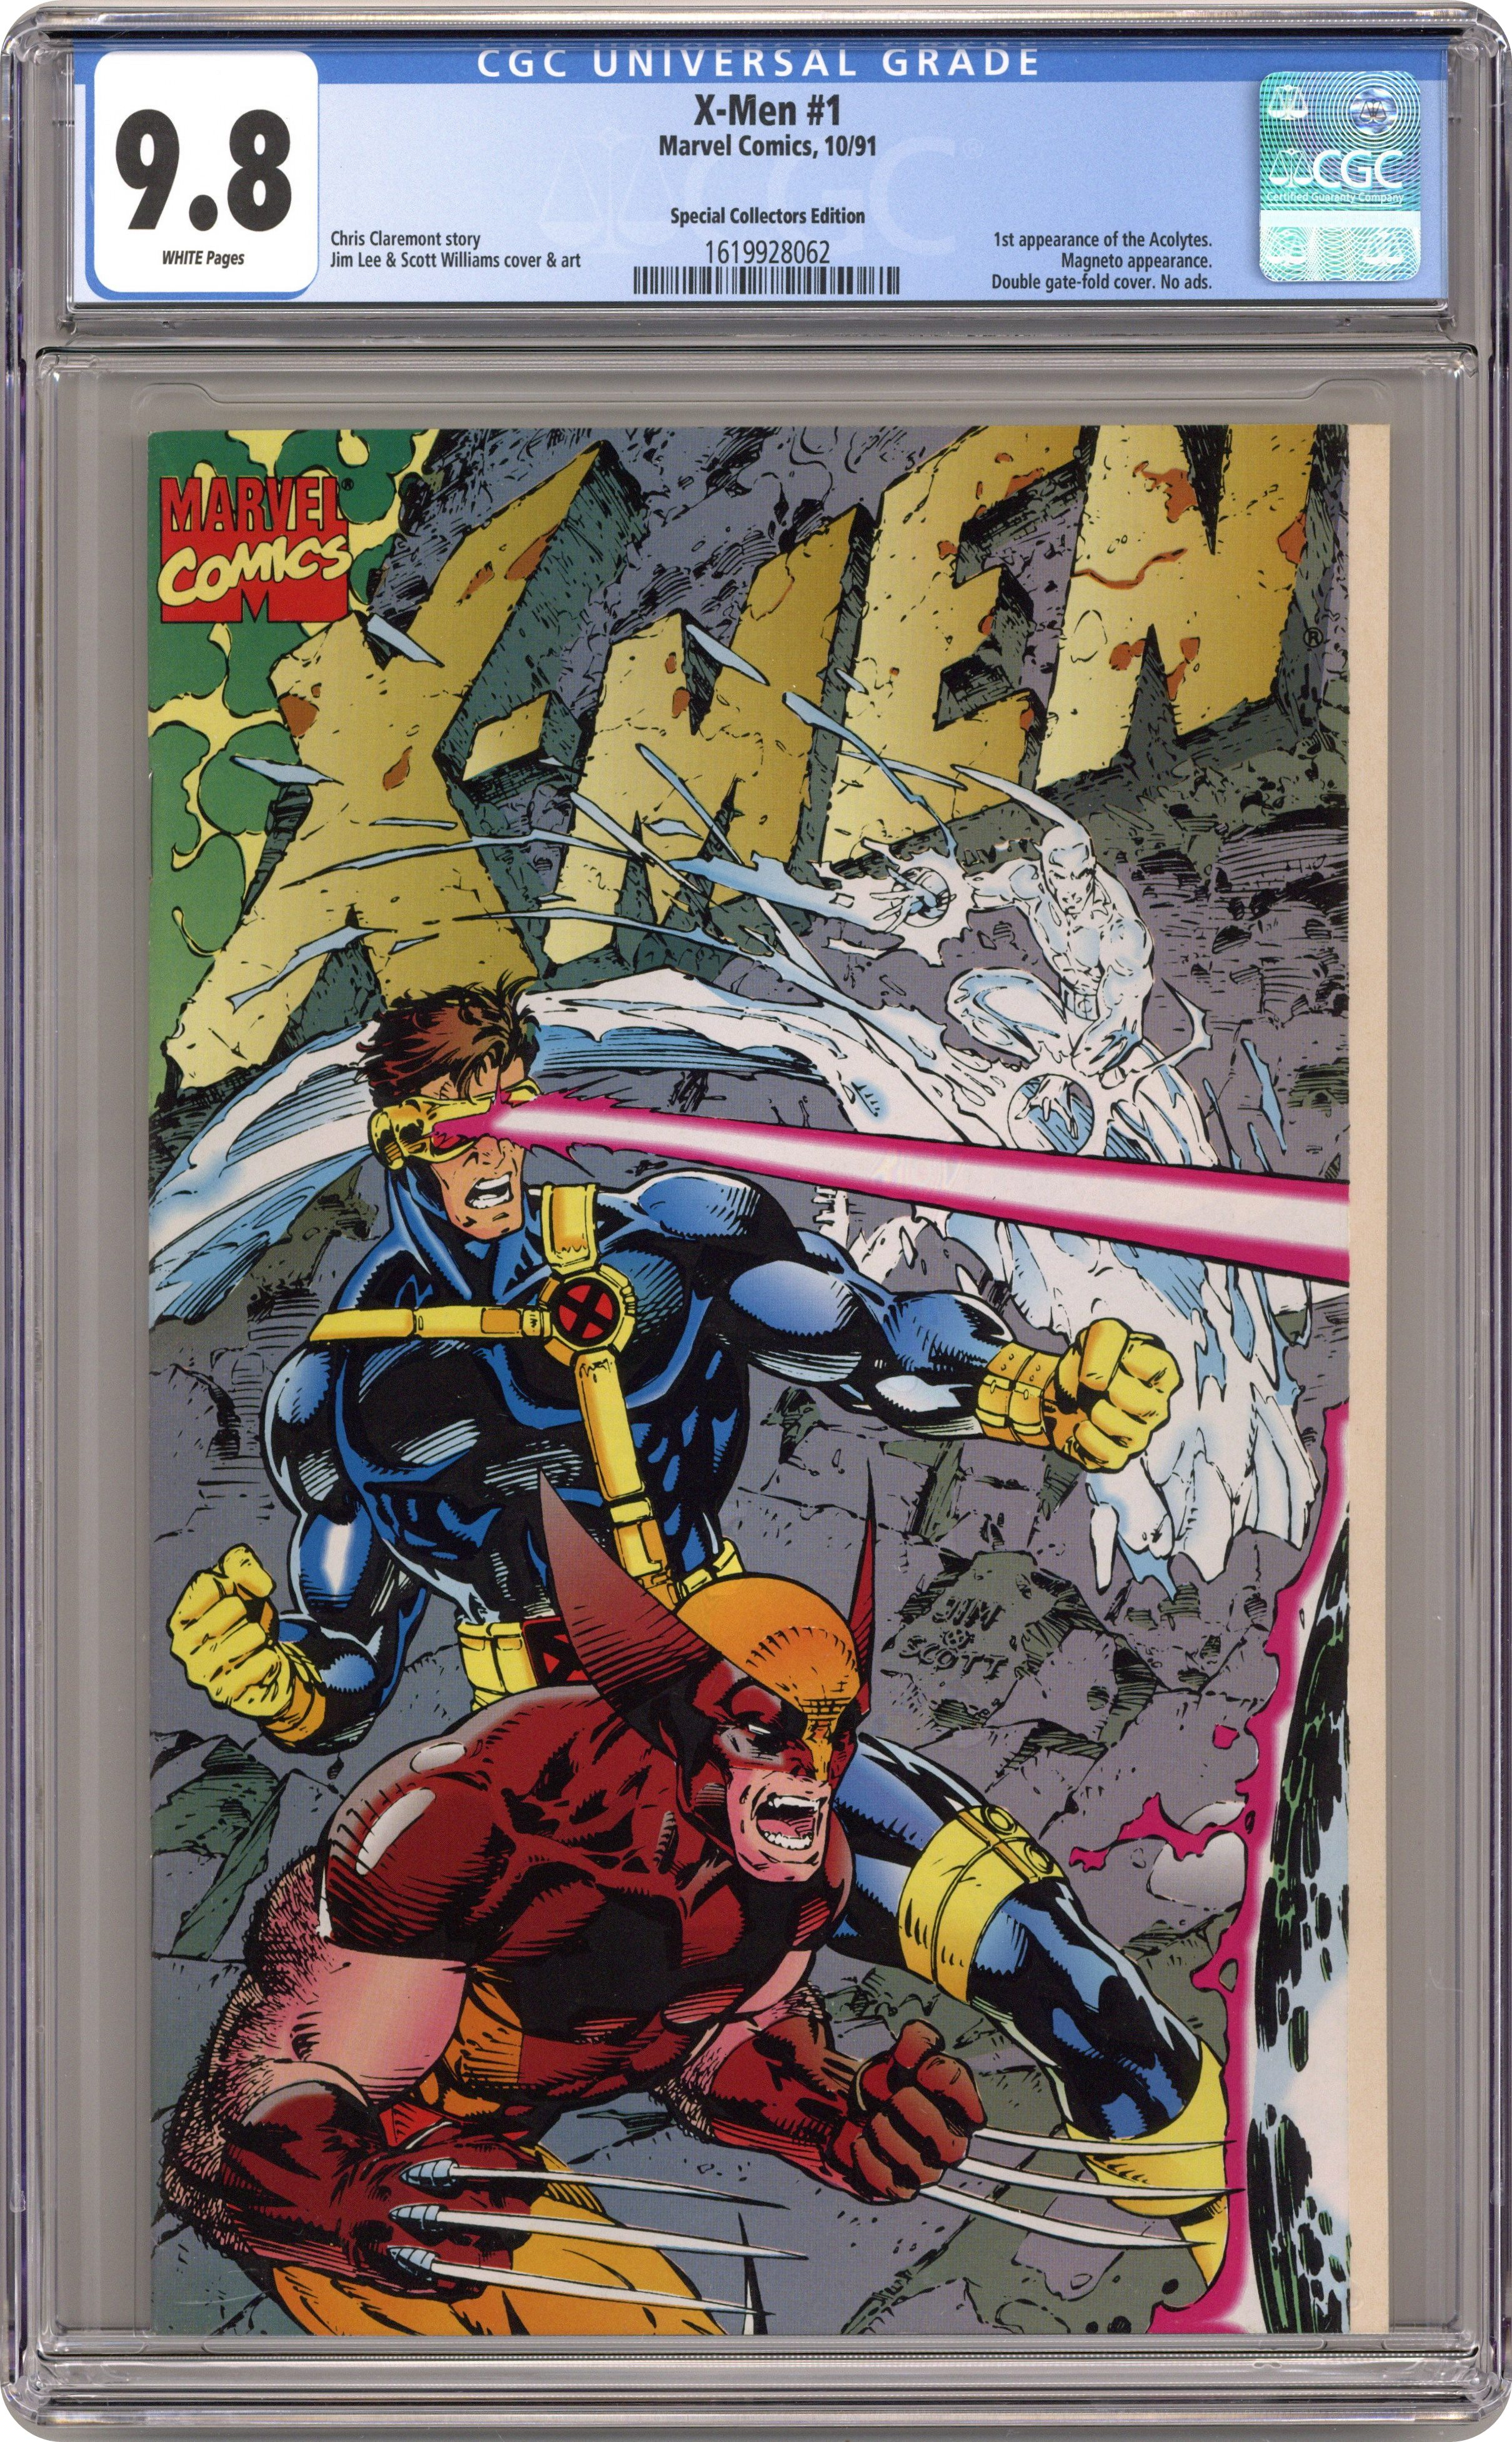 1991 X-Men #1 CGC NM//M 9.8 White Pages Special Collectors Edition!